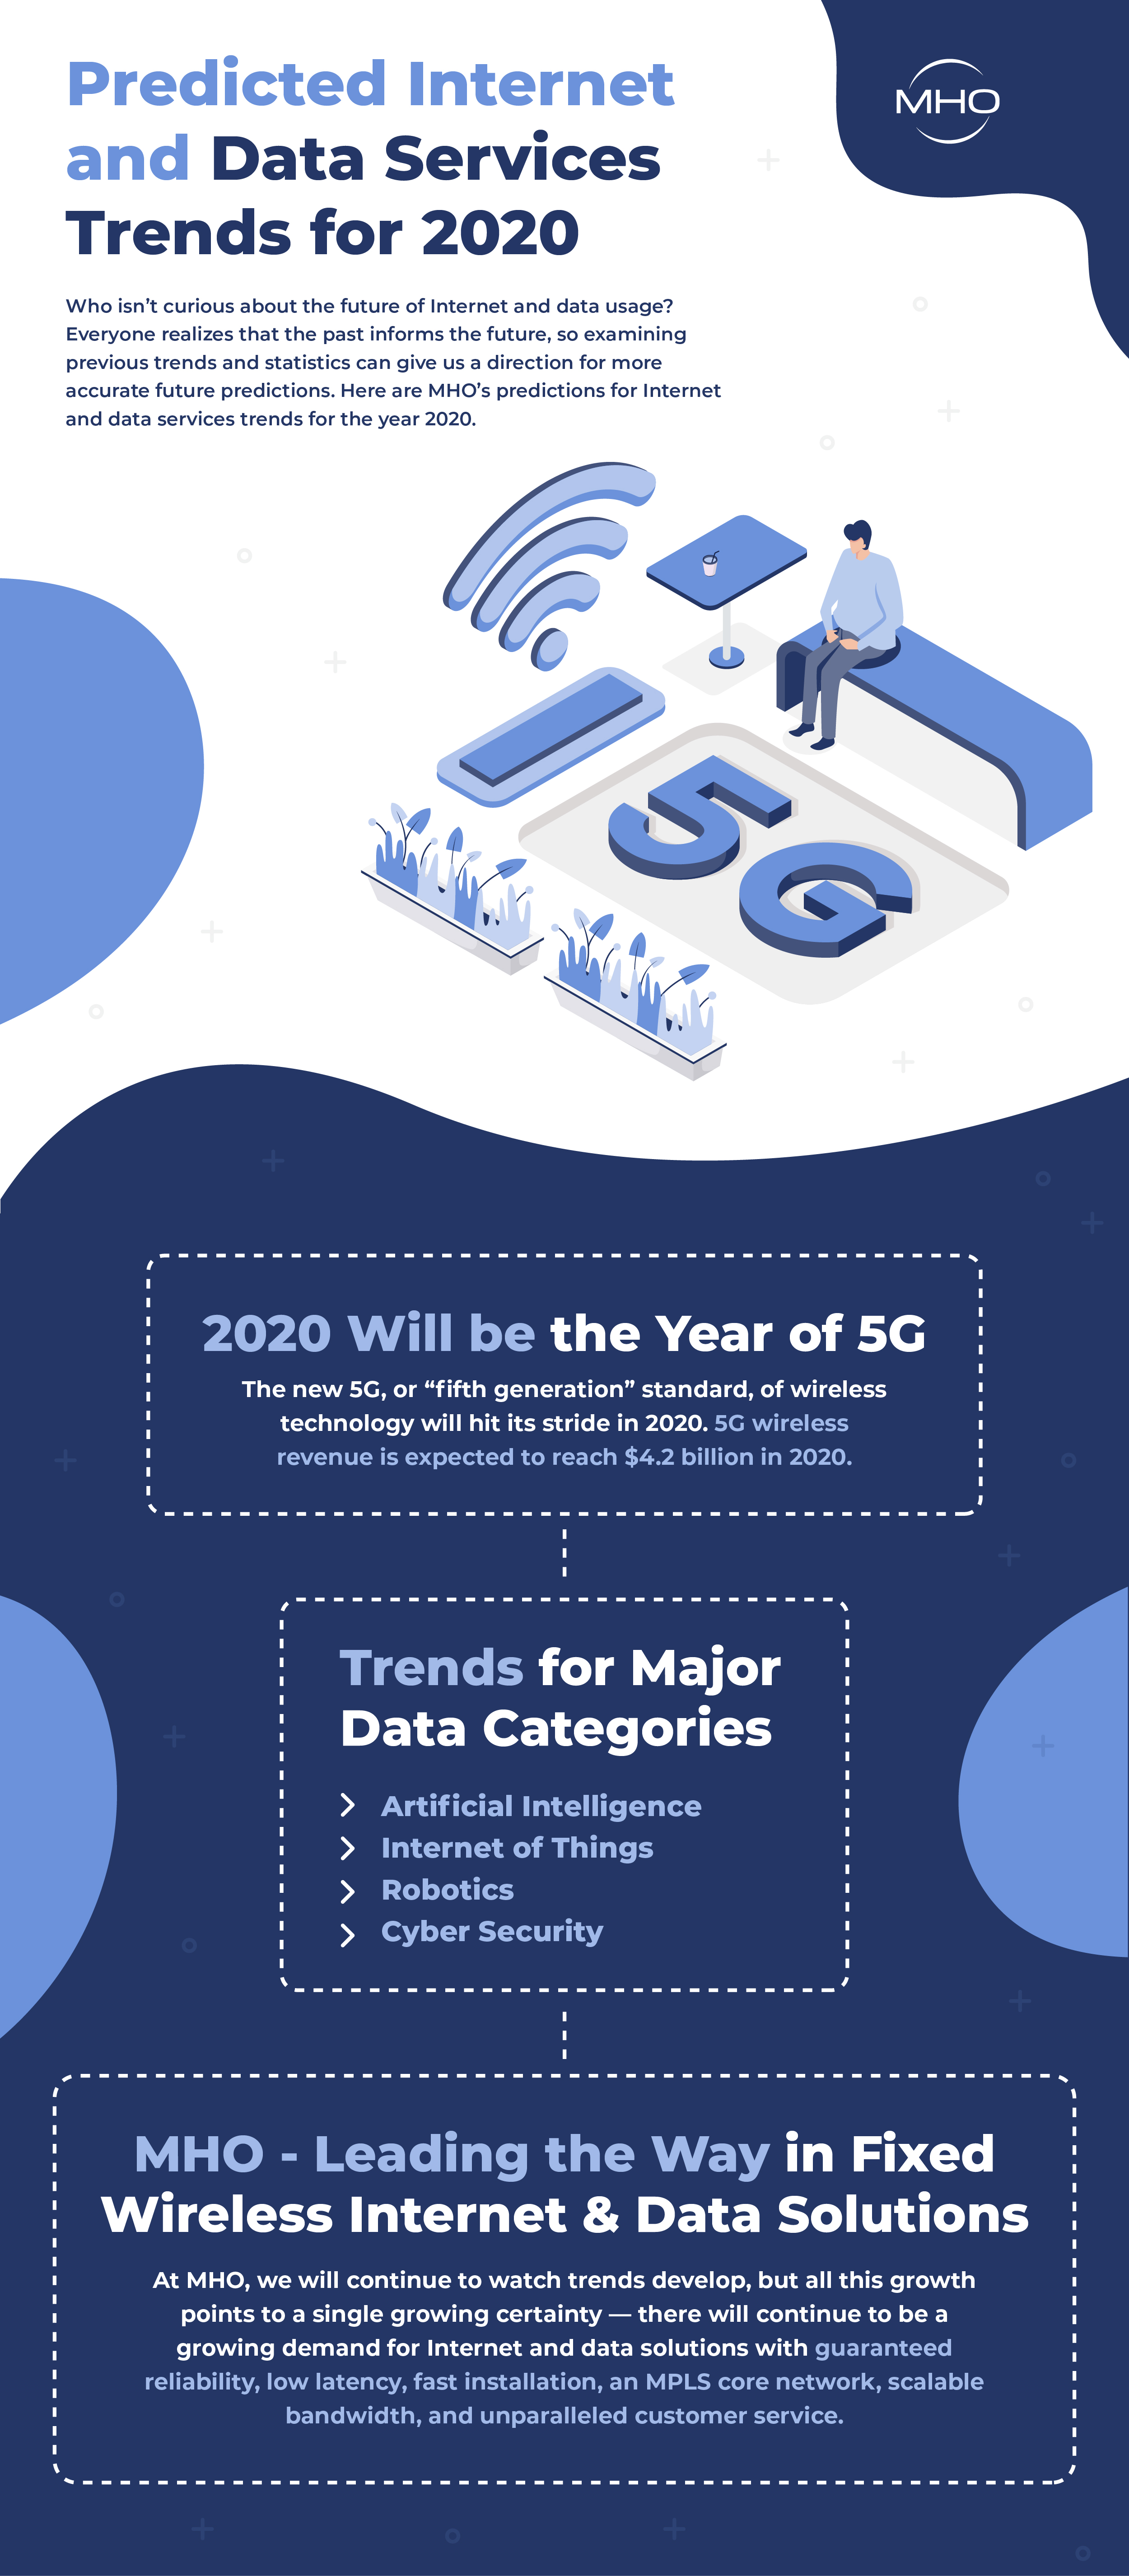 Predicted Internet and Data Services 2020